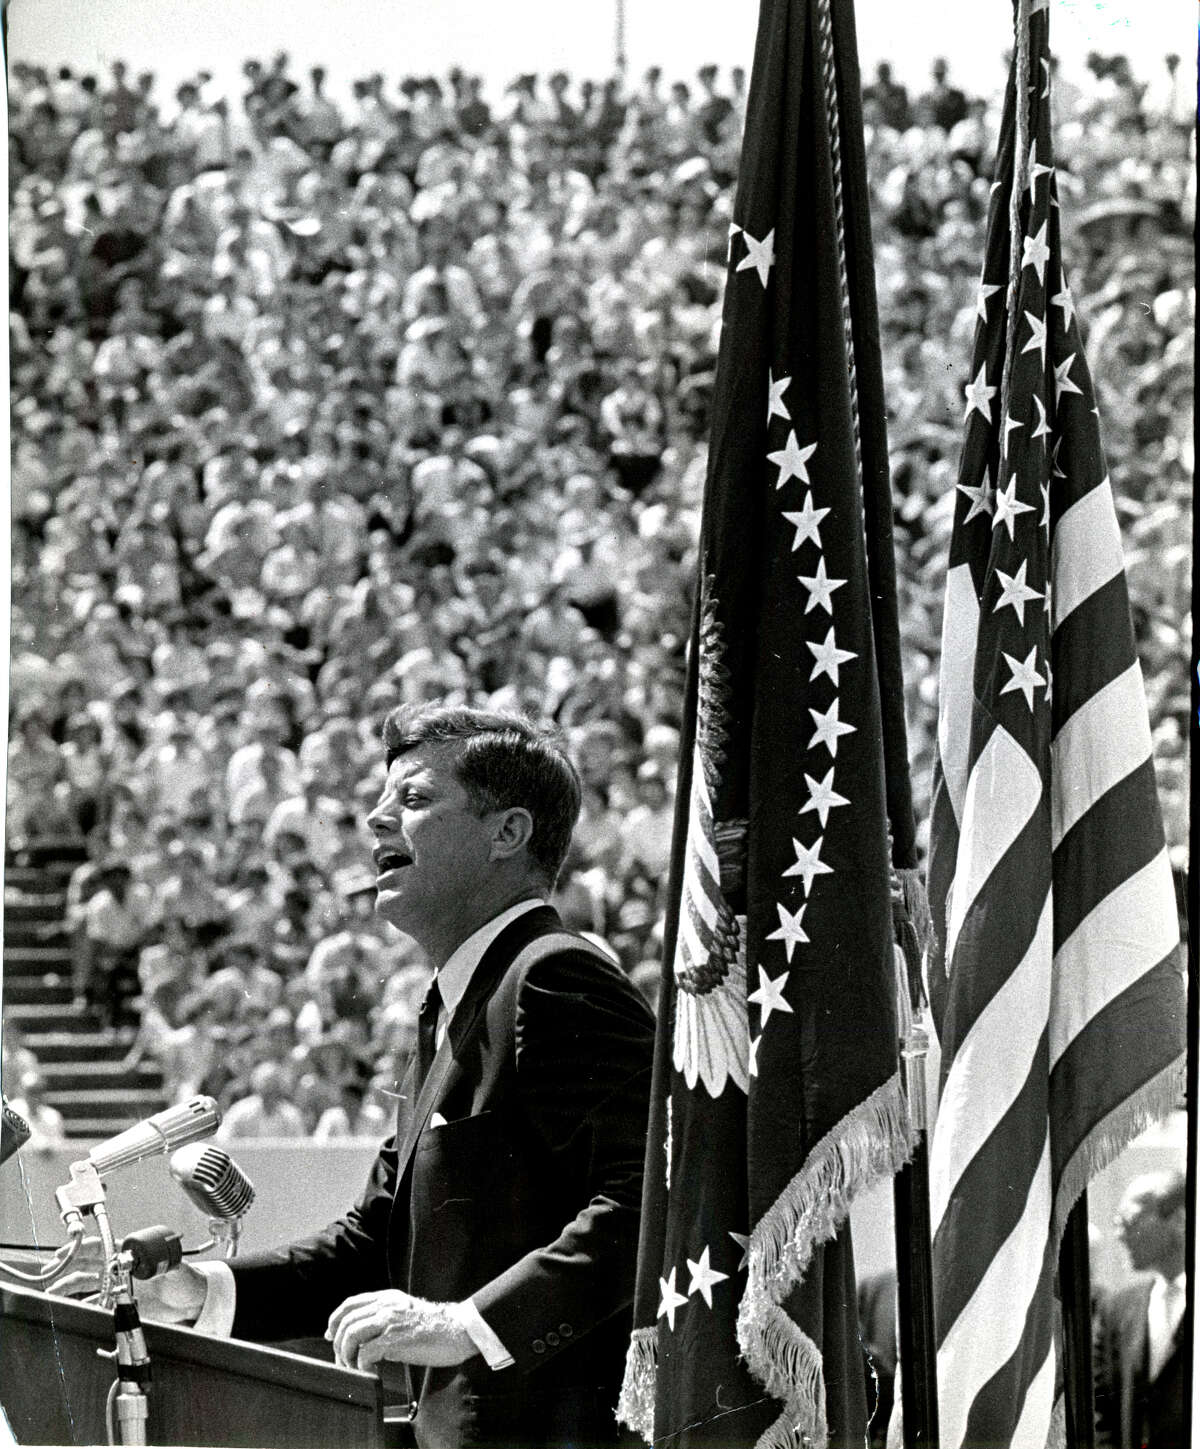 In 1962, President John F. Kennedy urged the nation to travel to the moon. His challenge came true on July 20, 1969, when astronauts landed and Neil Armstrong walked on its surface the next day.